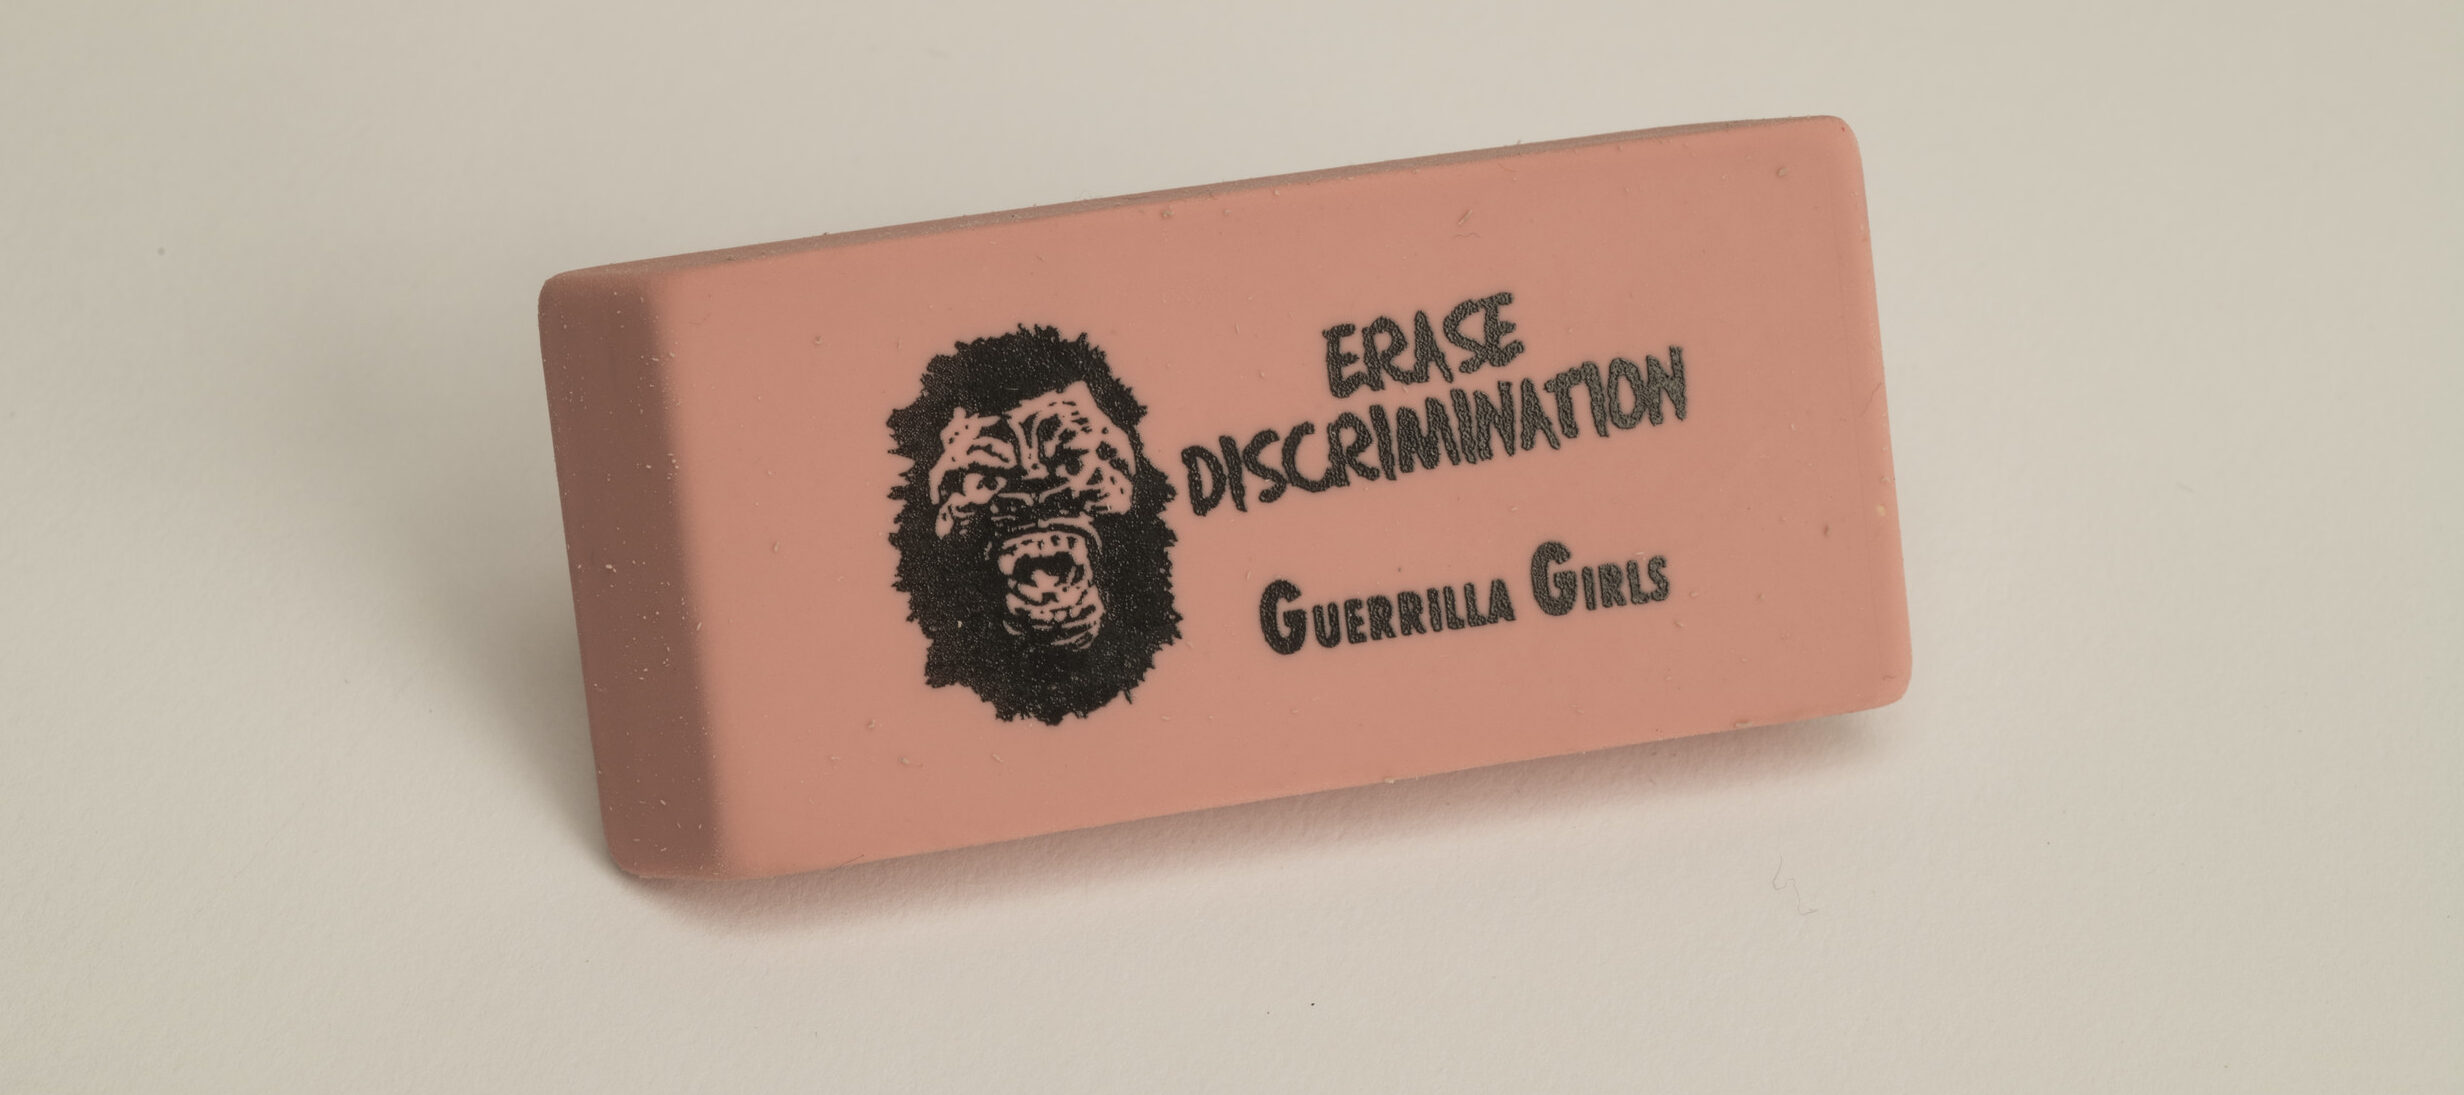 A rectangular pink eraser against a white background. Printed on the eraser in black is a yelling gorilla face to the left of the words,